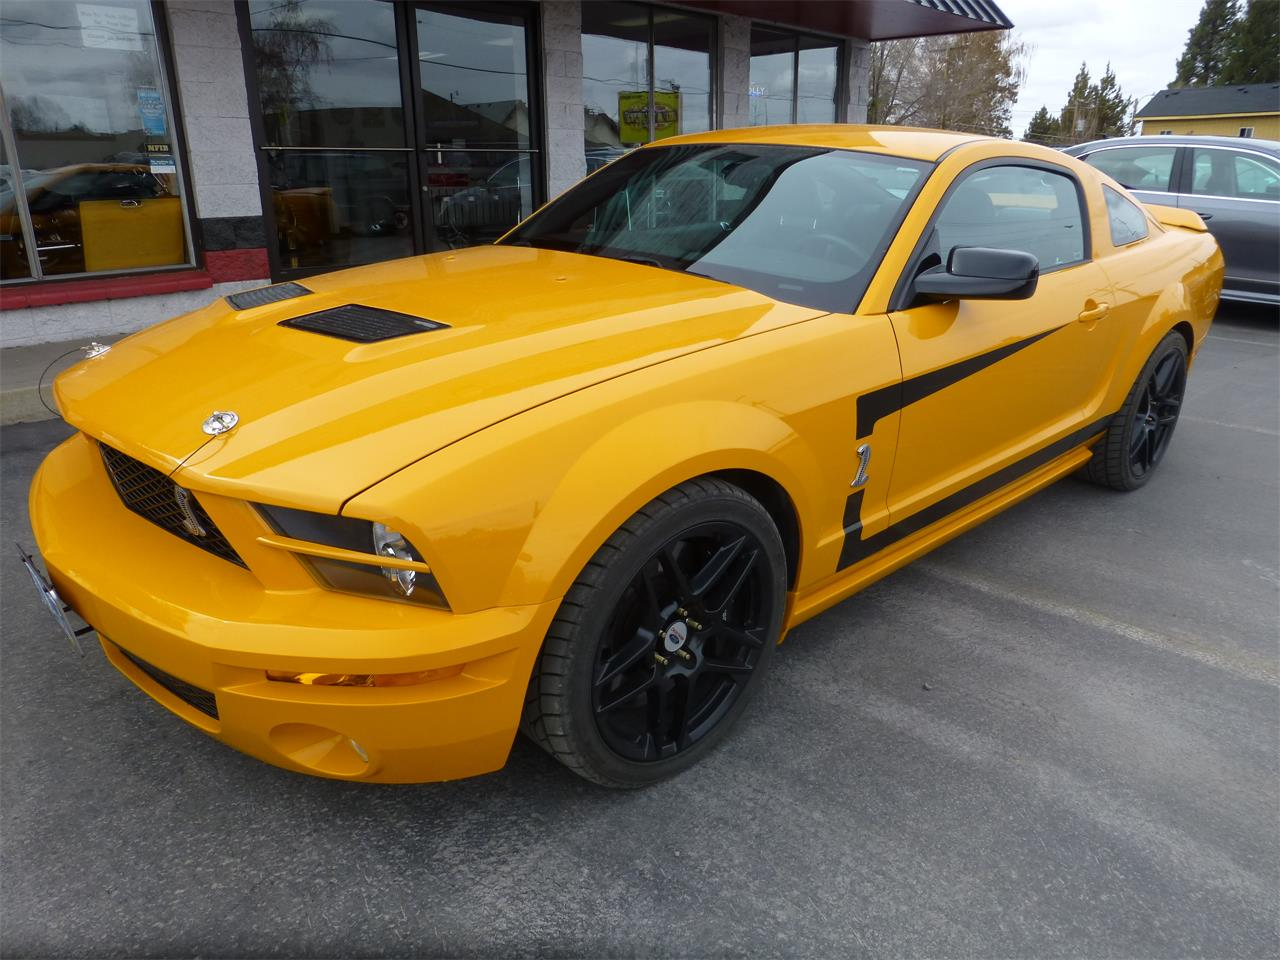 Large picture of 08 shelby gt500 svt n9uo